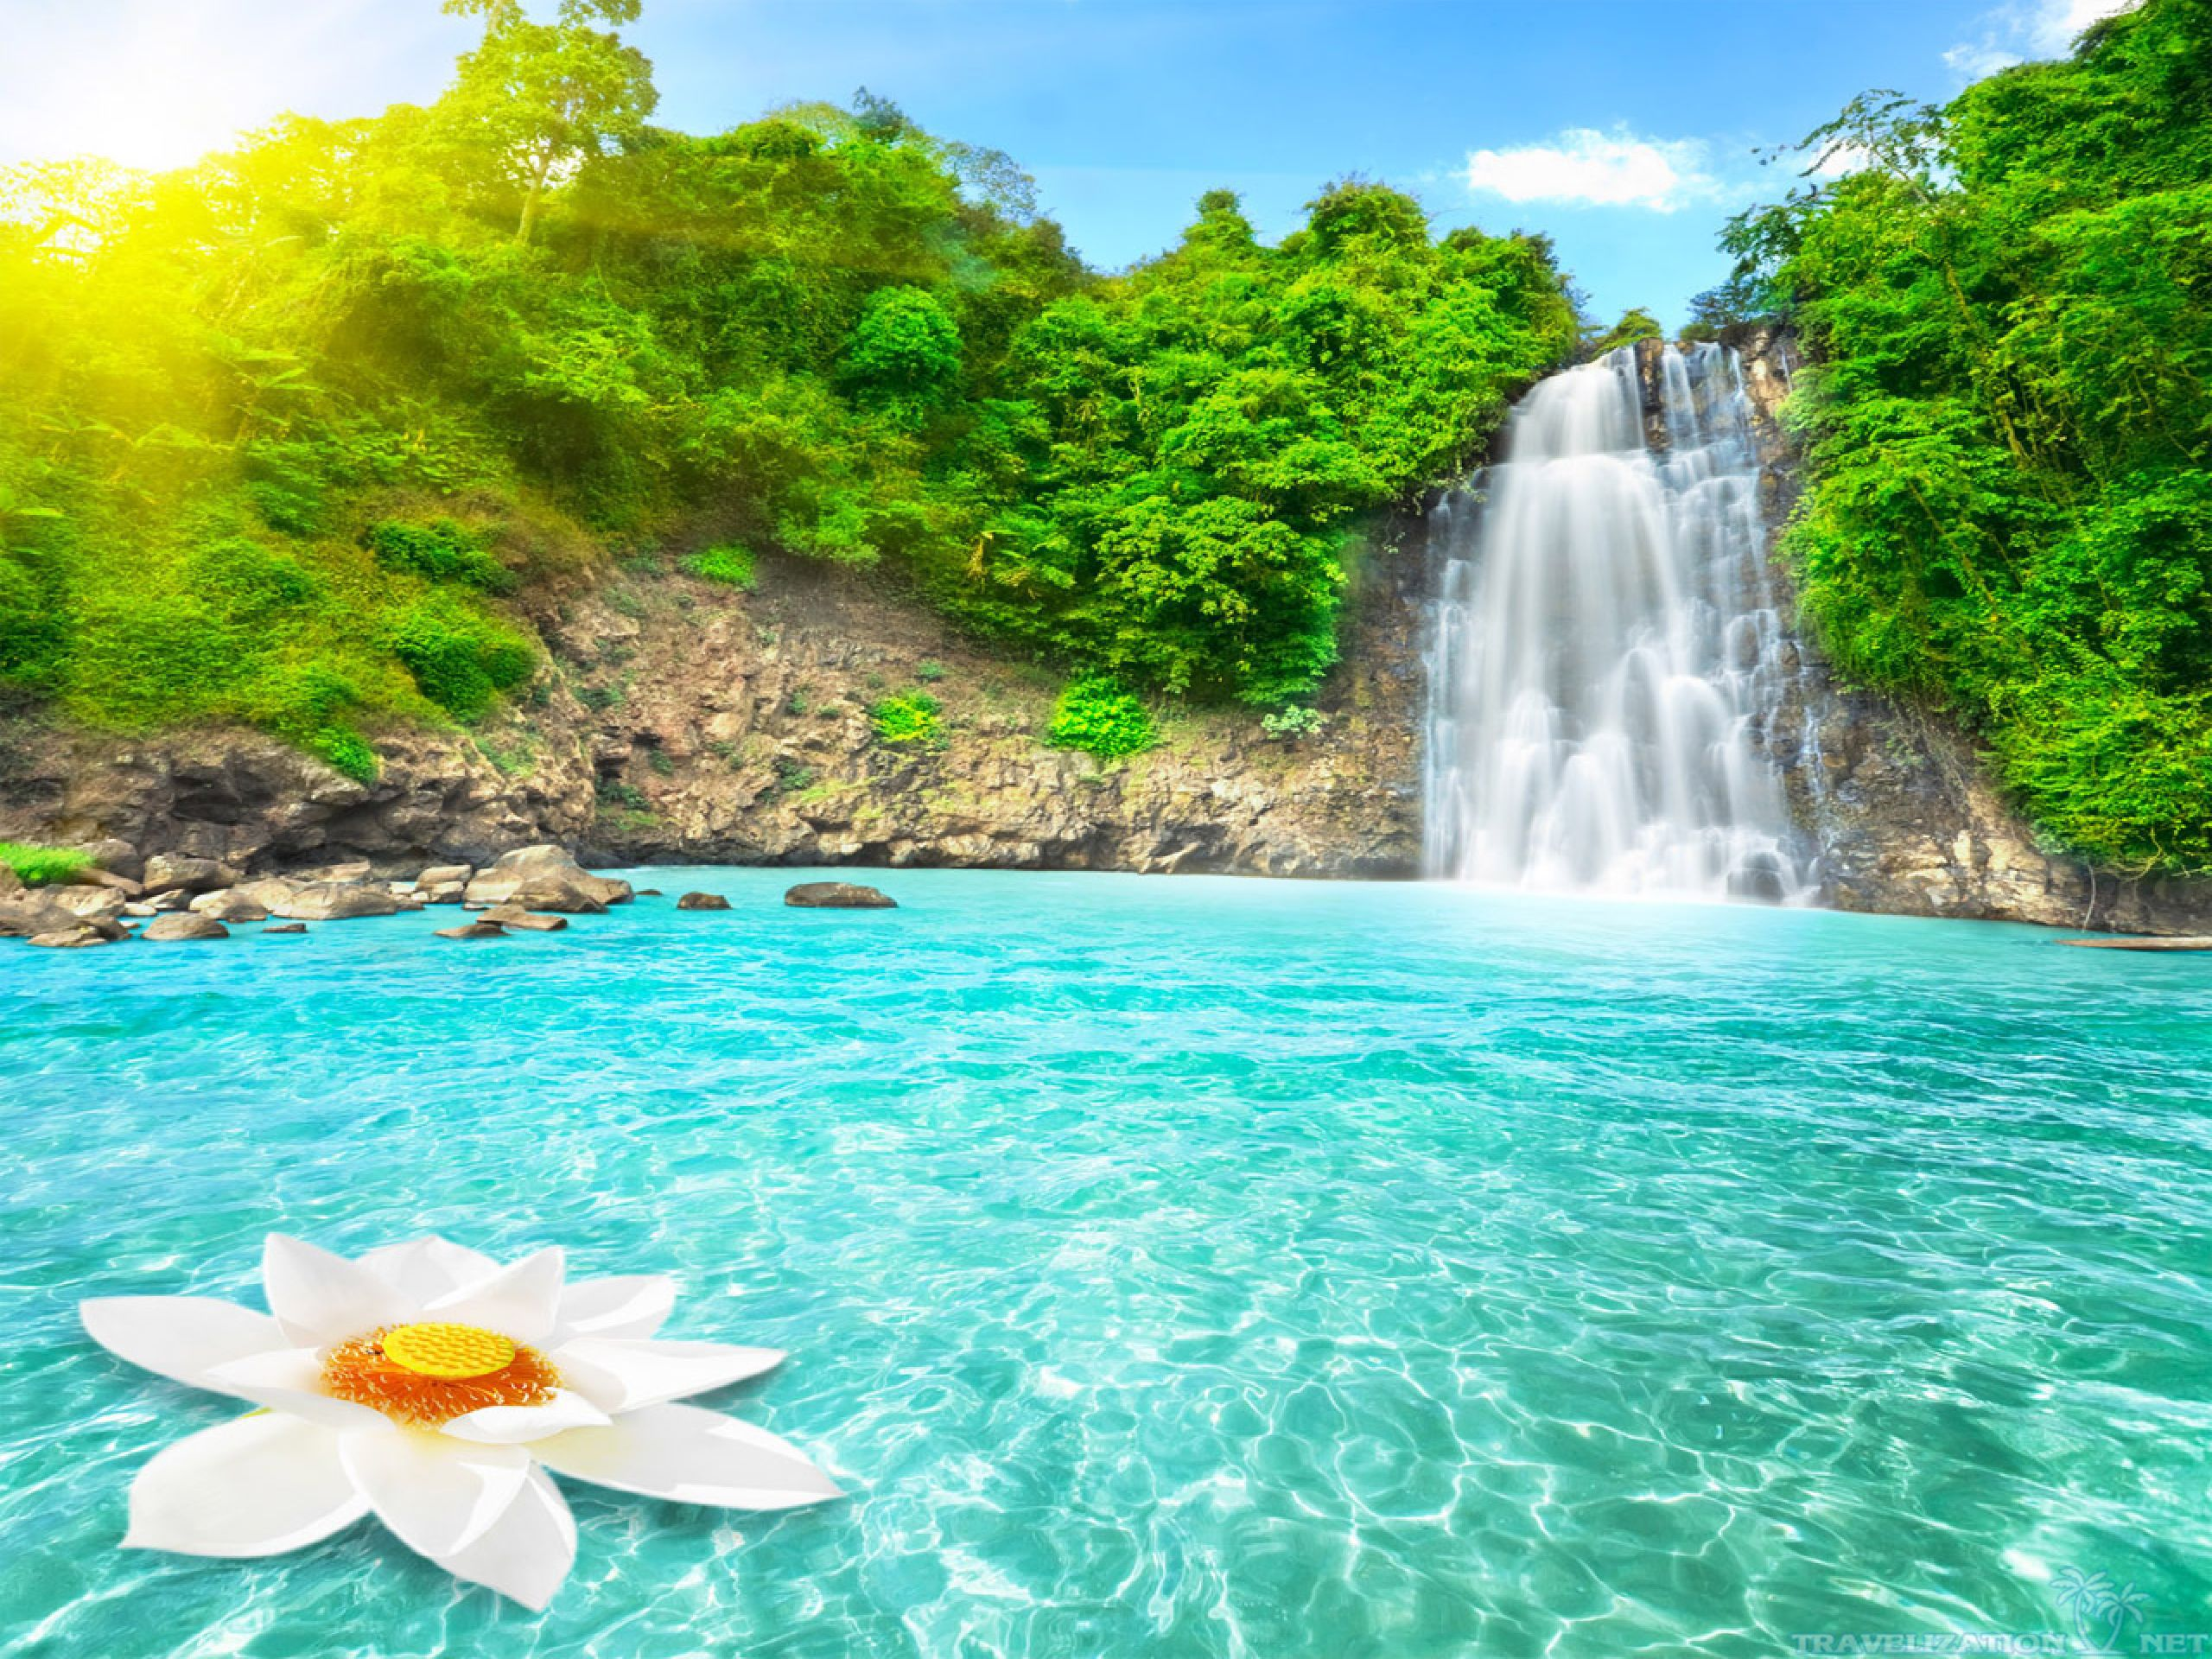 Free Hd Fall Desktop Wallpaper The Meaning And Symbolism Of The Word Paradise